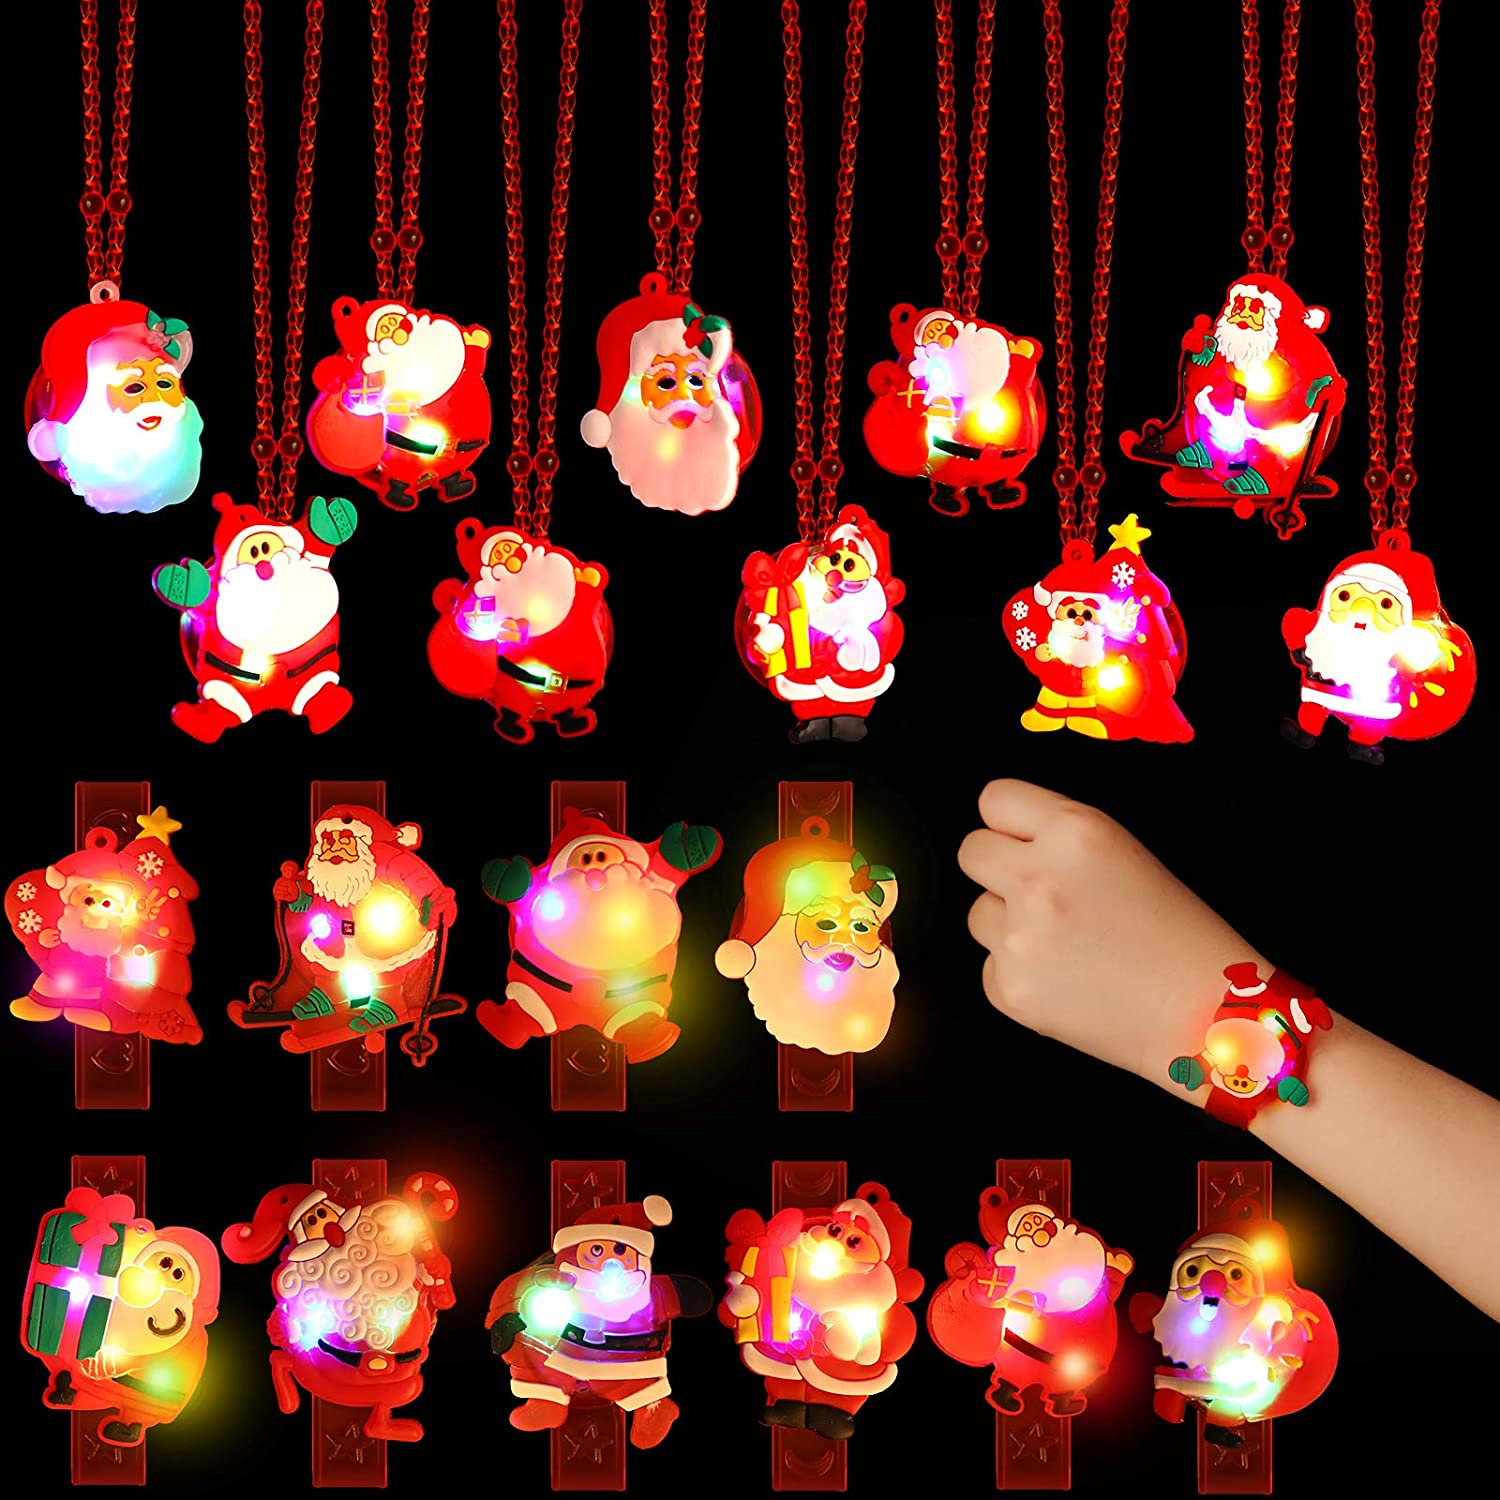 30 Christmas LED Light up Party Favor Necklace Bracelet Wristband Christmas Light up Toy for Men and Women Ornaments Decorations with Package